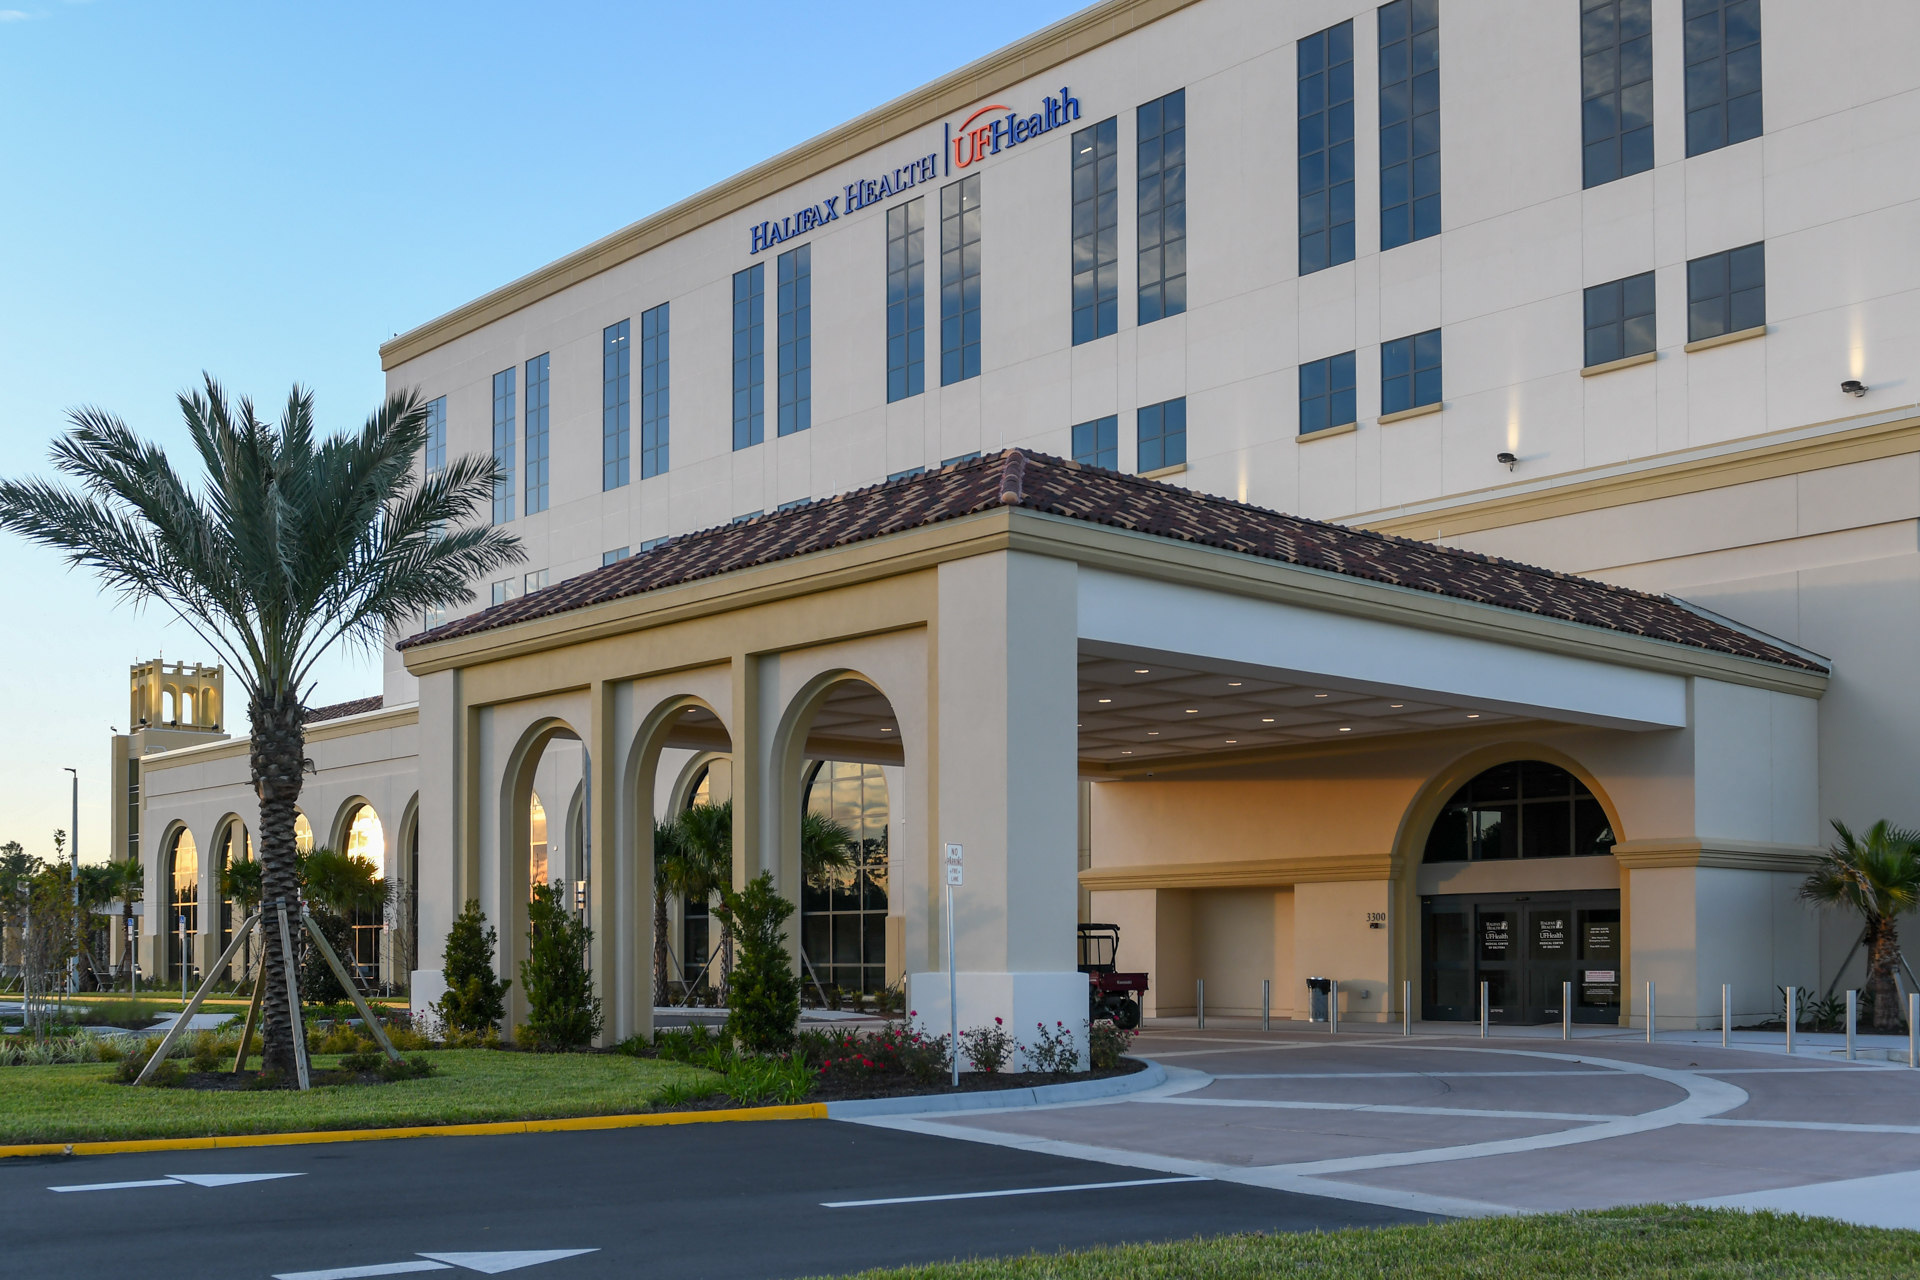 Image of outside the Medical Center of Deltona